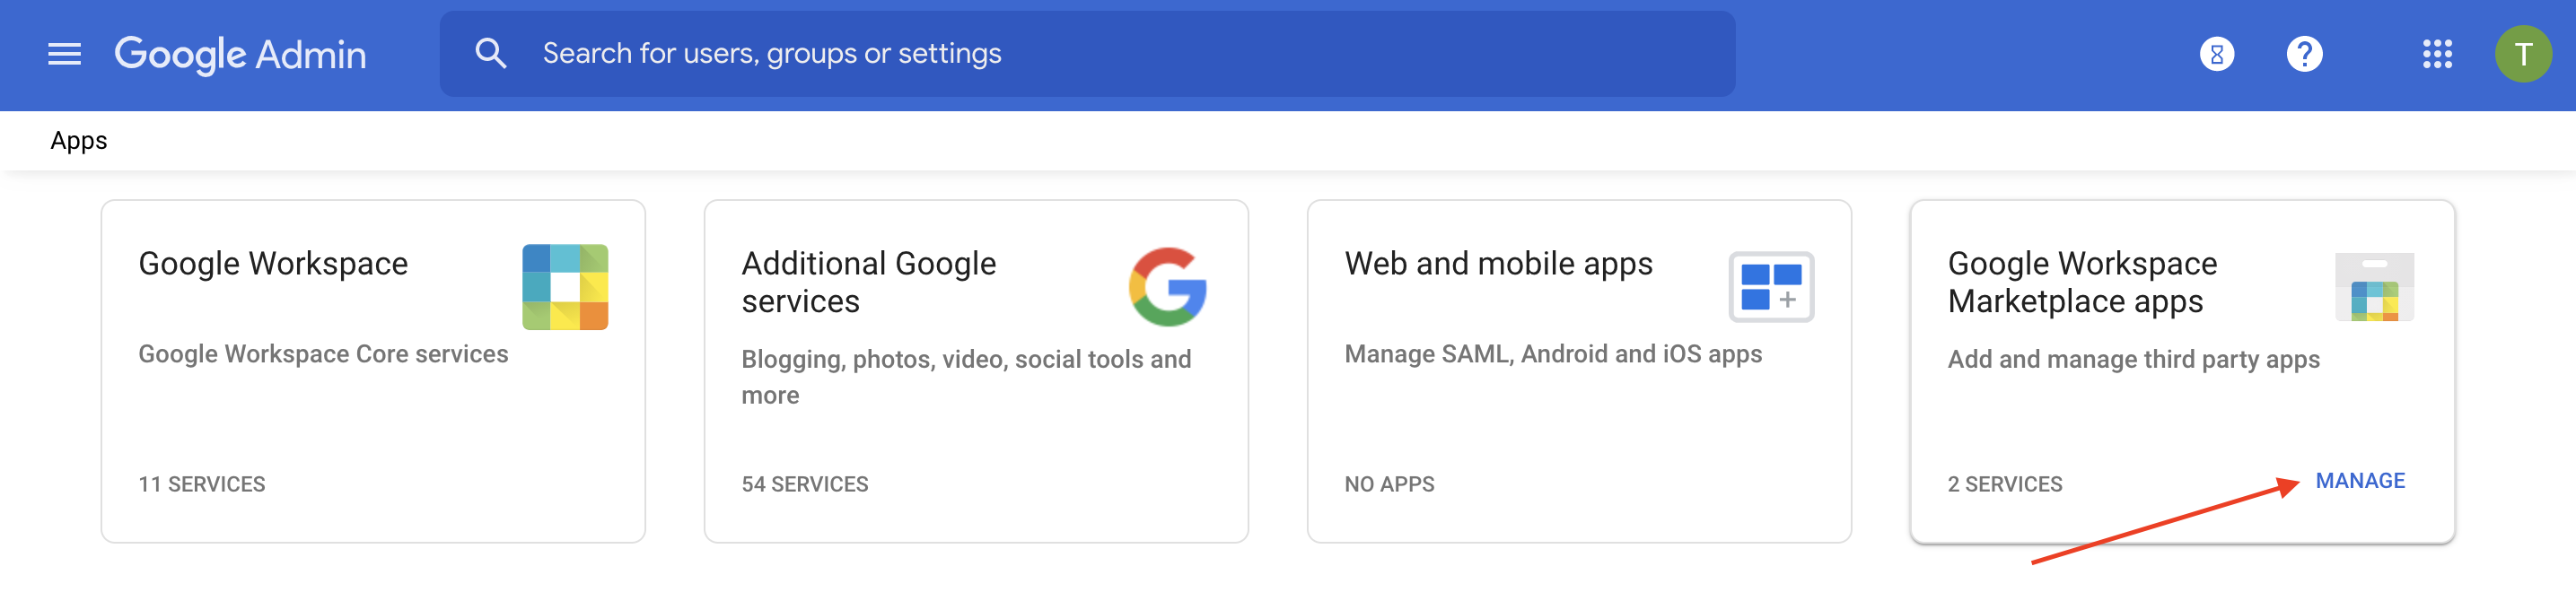 Screen_Shot_of_Google_Workspace_Marketplace_Apps_settings.png